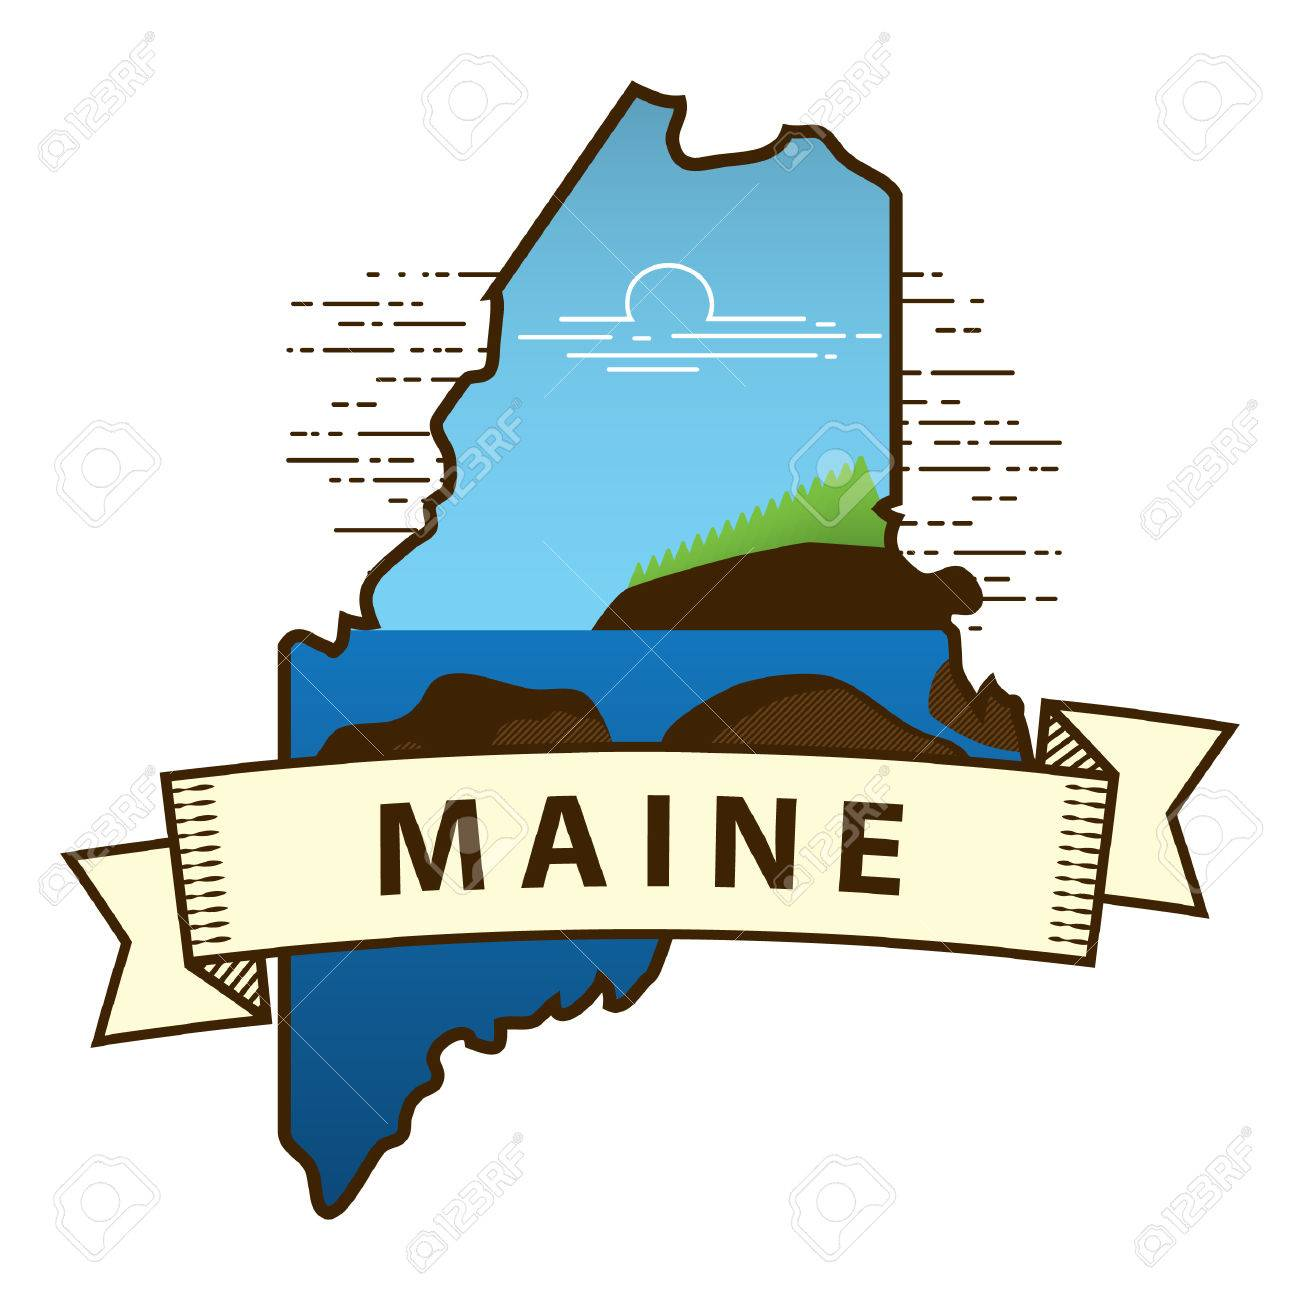 maine state map on bavaria state map, green state map, florida state map, california state map, south state map, montgomery state map, map state map, detailed state maine map, bremen state map, kenosha state map, wood state map, black state map, north state map, alternate state map, mane state map, state of maine map, denmark state map, belgium state map, west state map, lower state map,